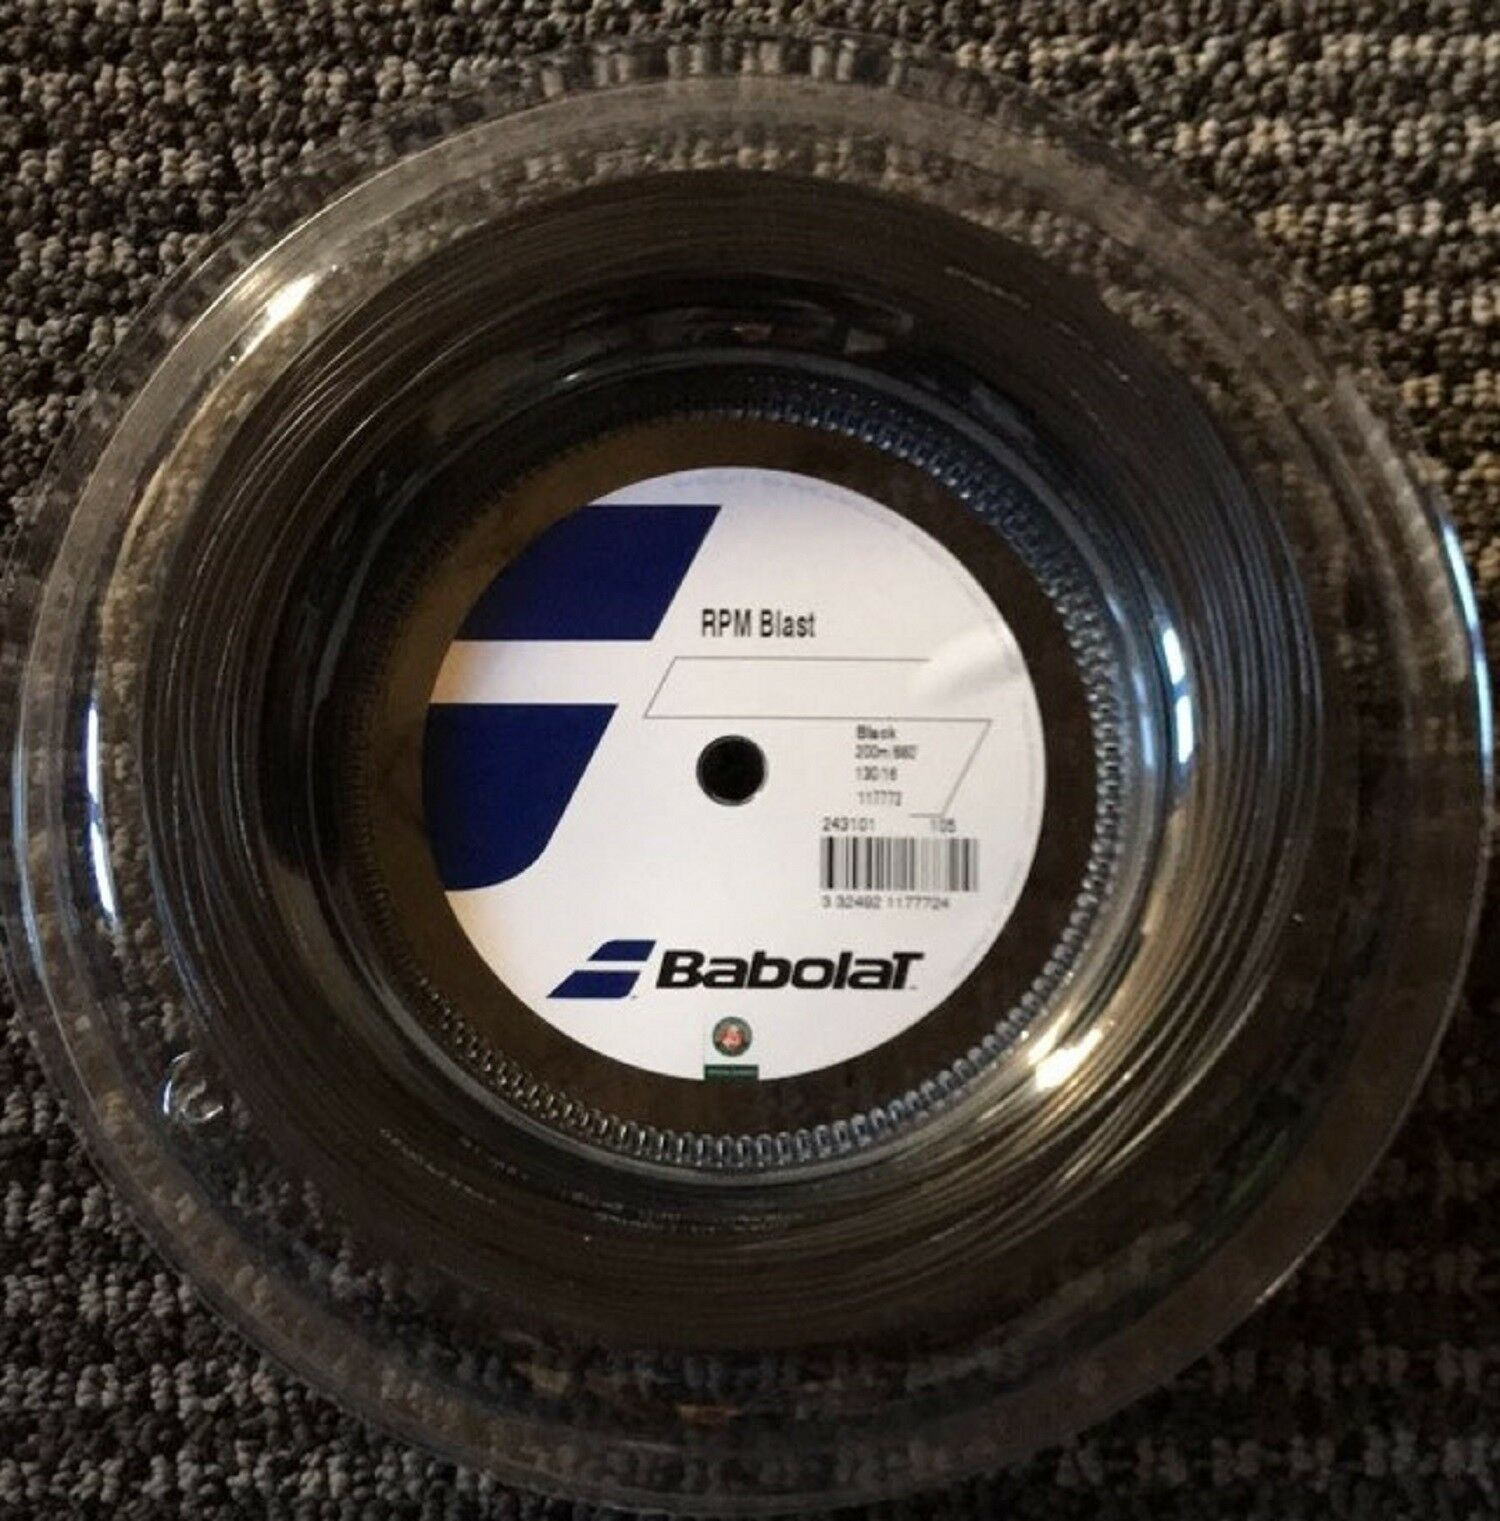 Babolat Xcel 16 Tennis String 200M//660ft Reel